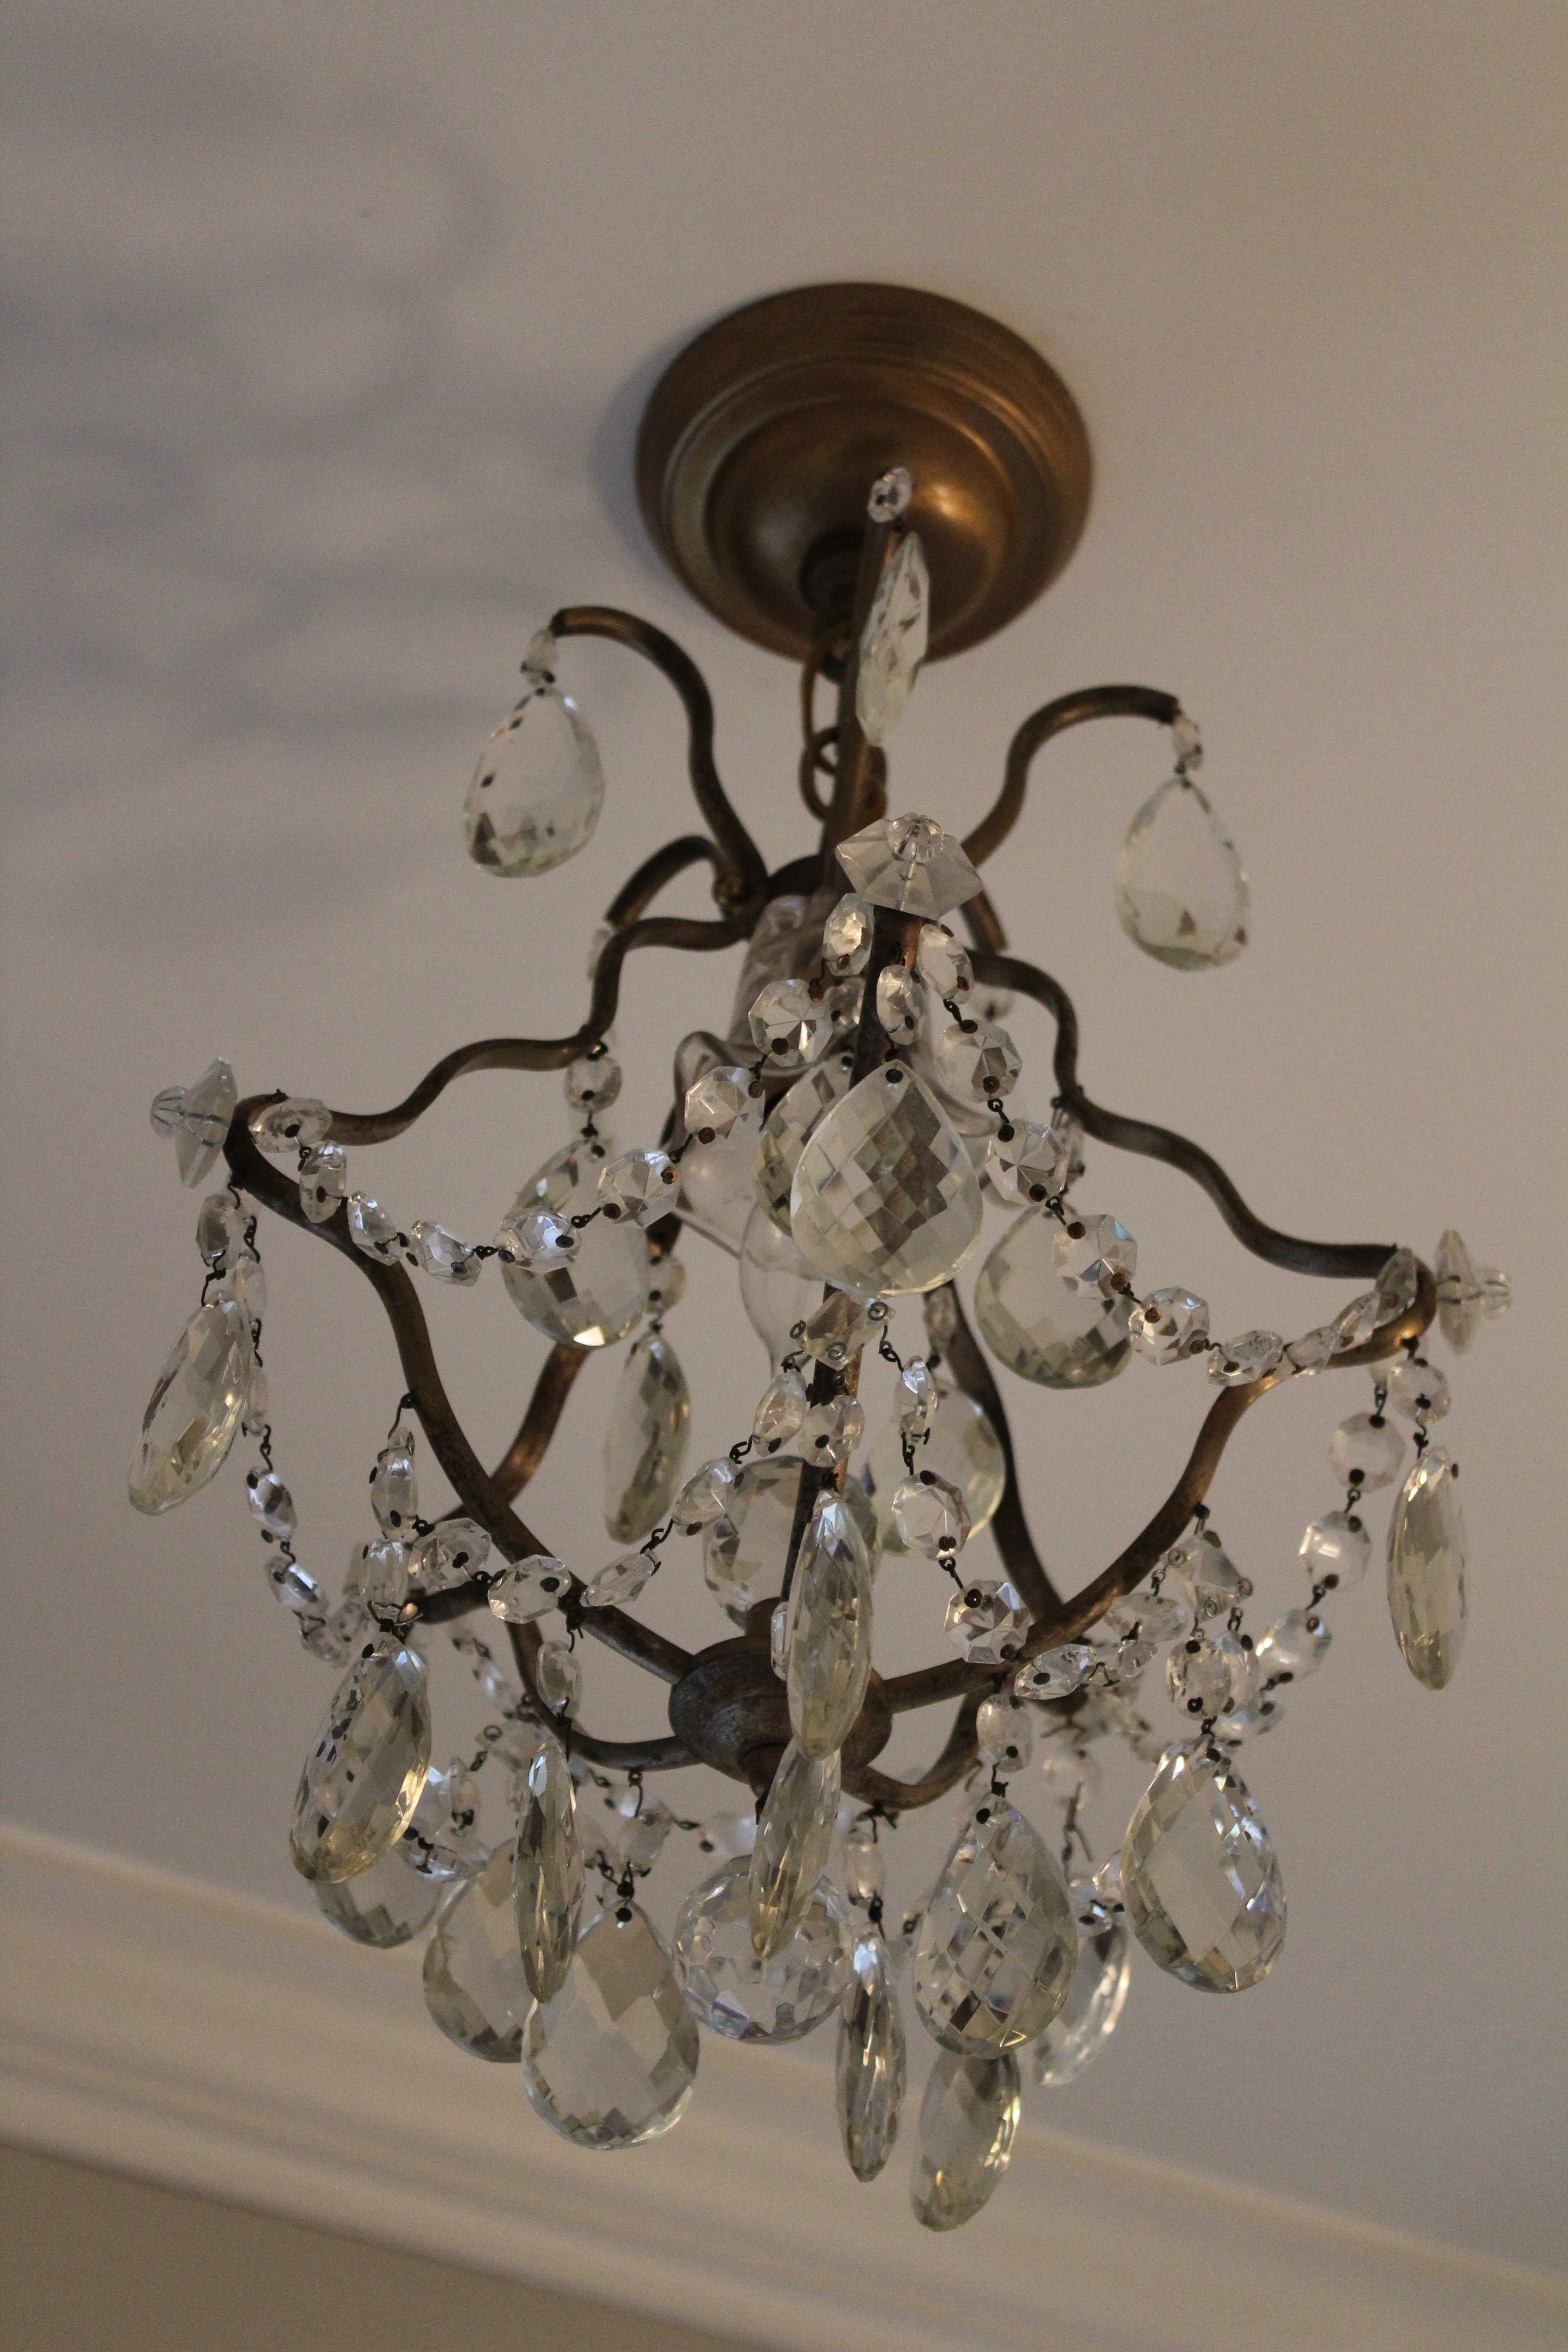 Petite chandeliers where to use them dells daily dish petite chandeliers where to use them aloadofball Gallery